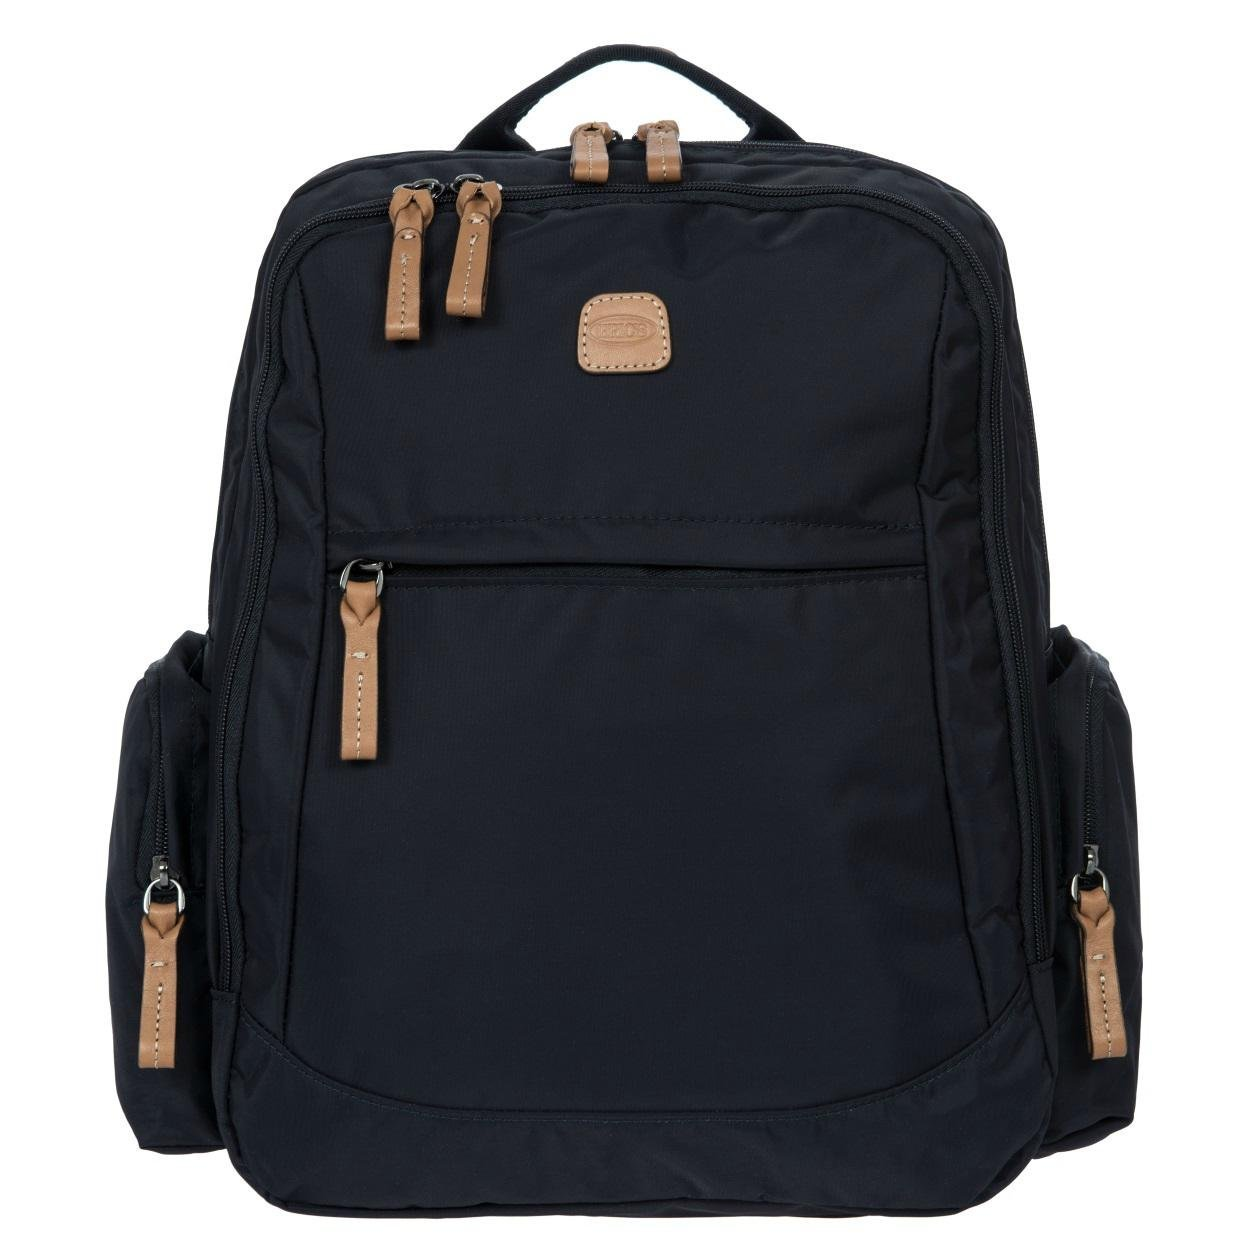 Bric's X-Bag/x-Travel 2.0 Nomad Laptop|Tablet Business Backpack, Black/Black, One Size by Bric's